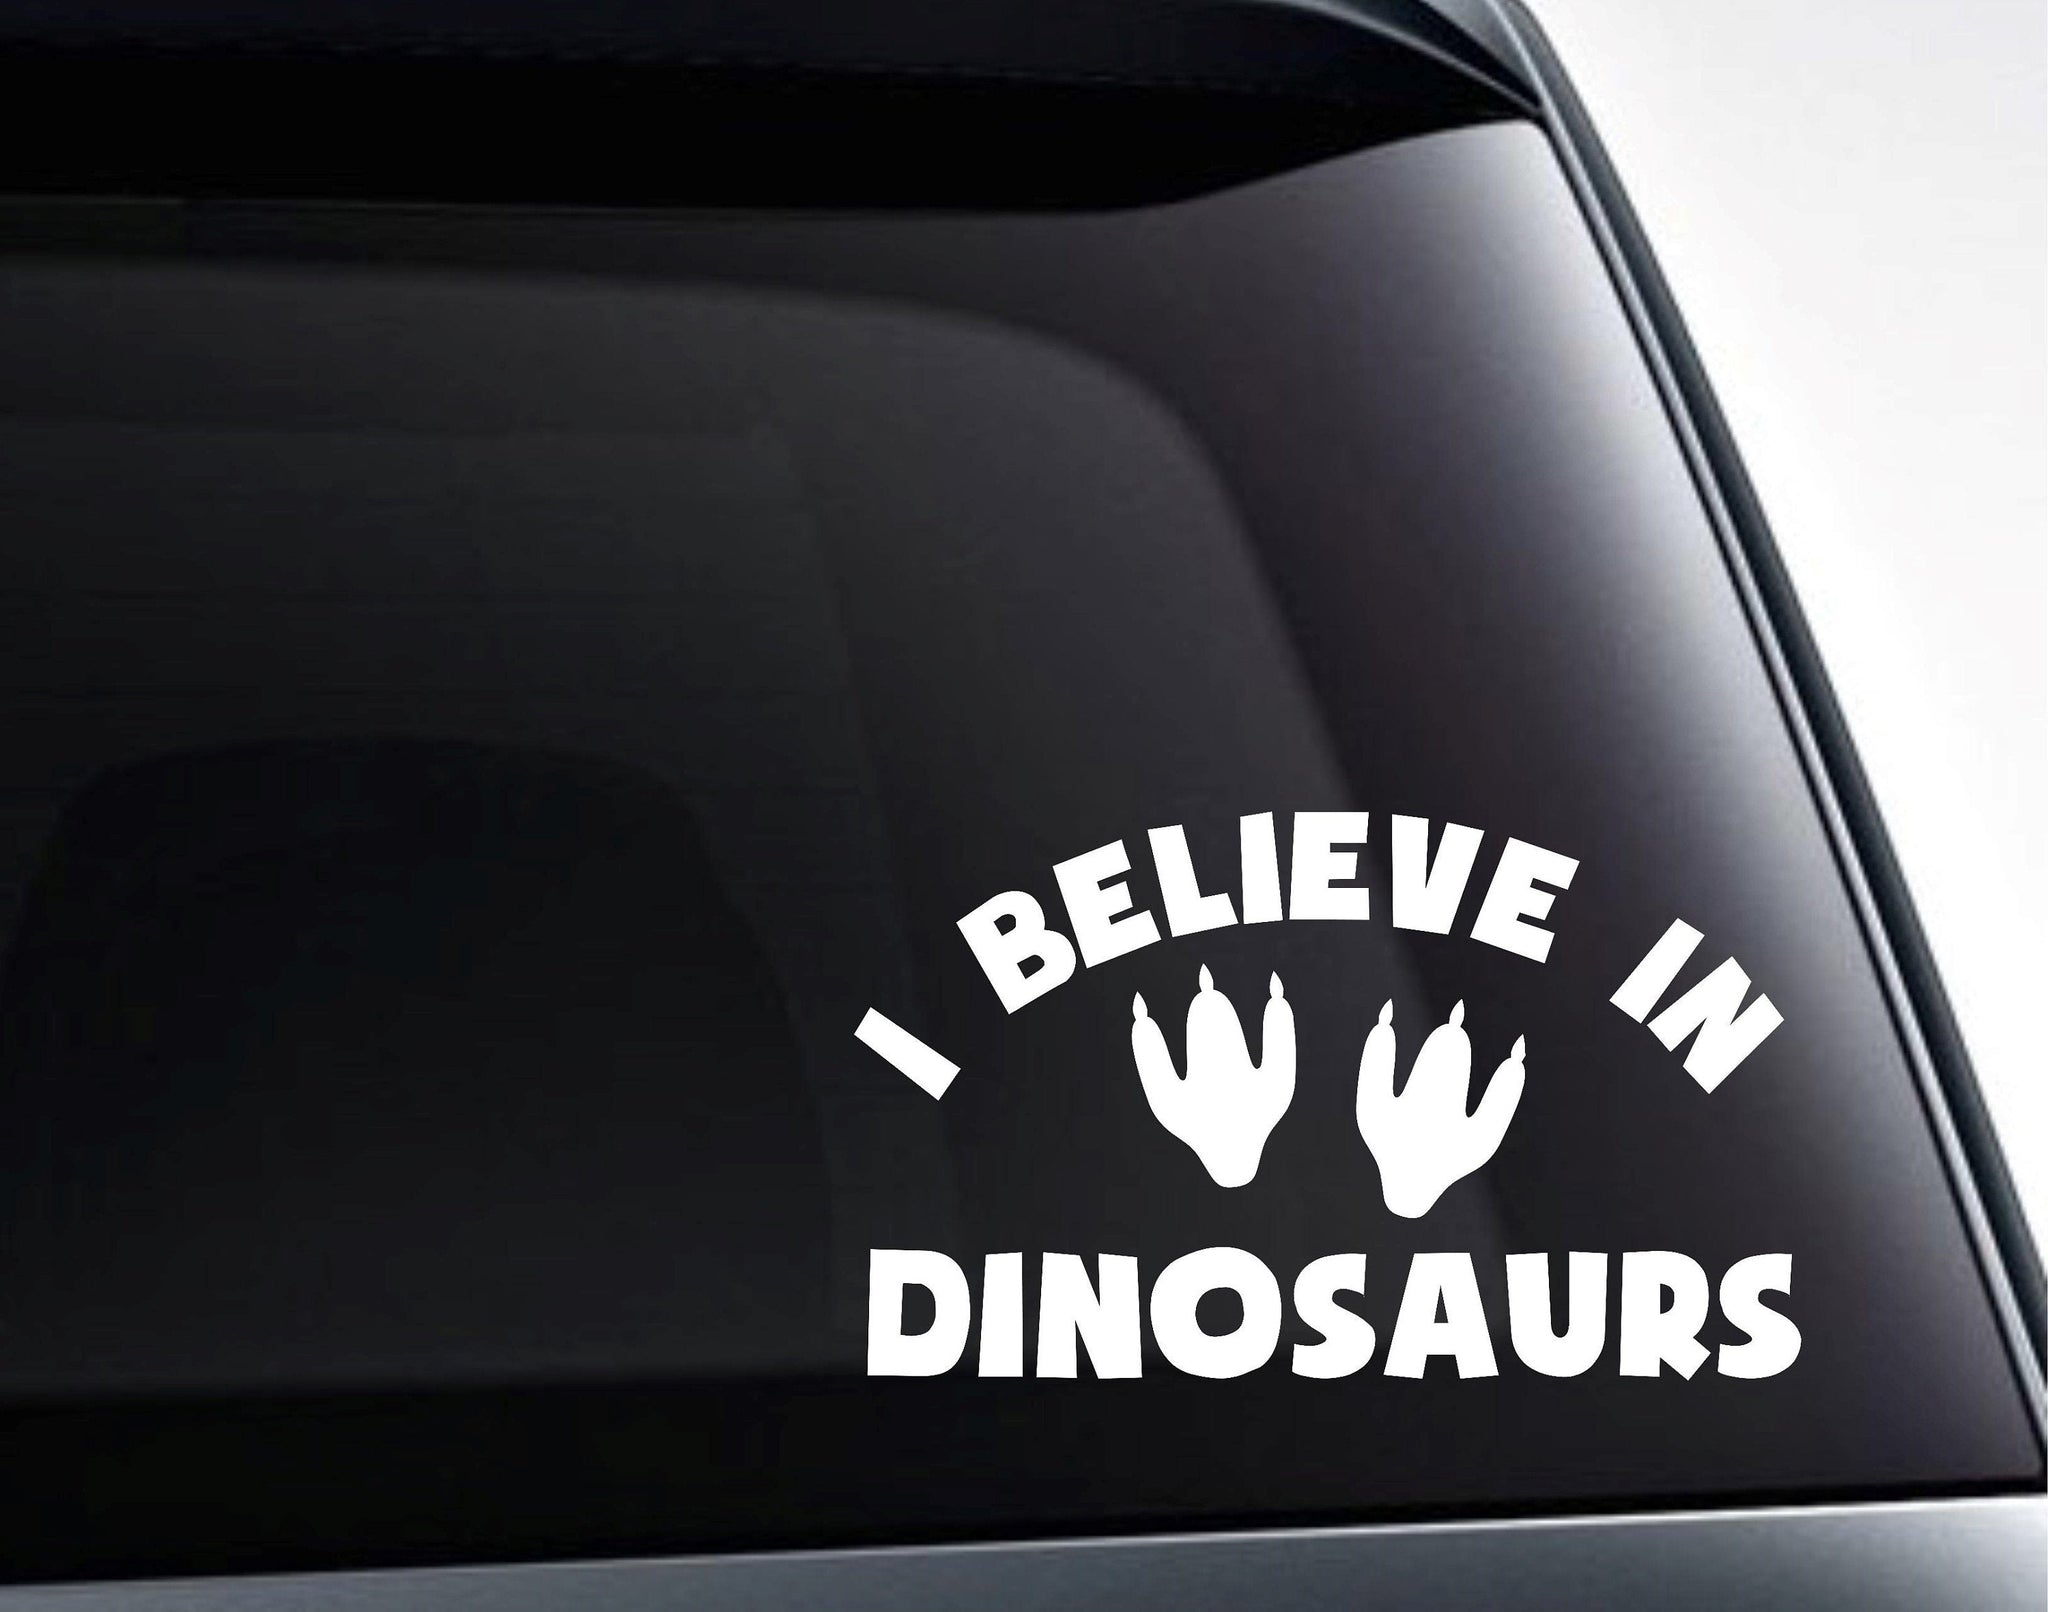 I Believe In Dinosaurs, Dinosaurs Footprints Vinyl Decal Sticker